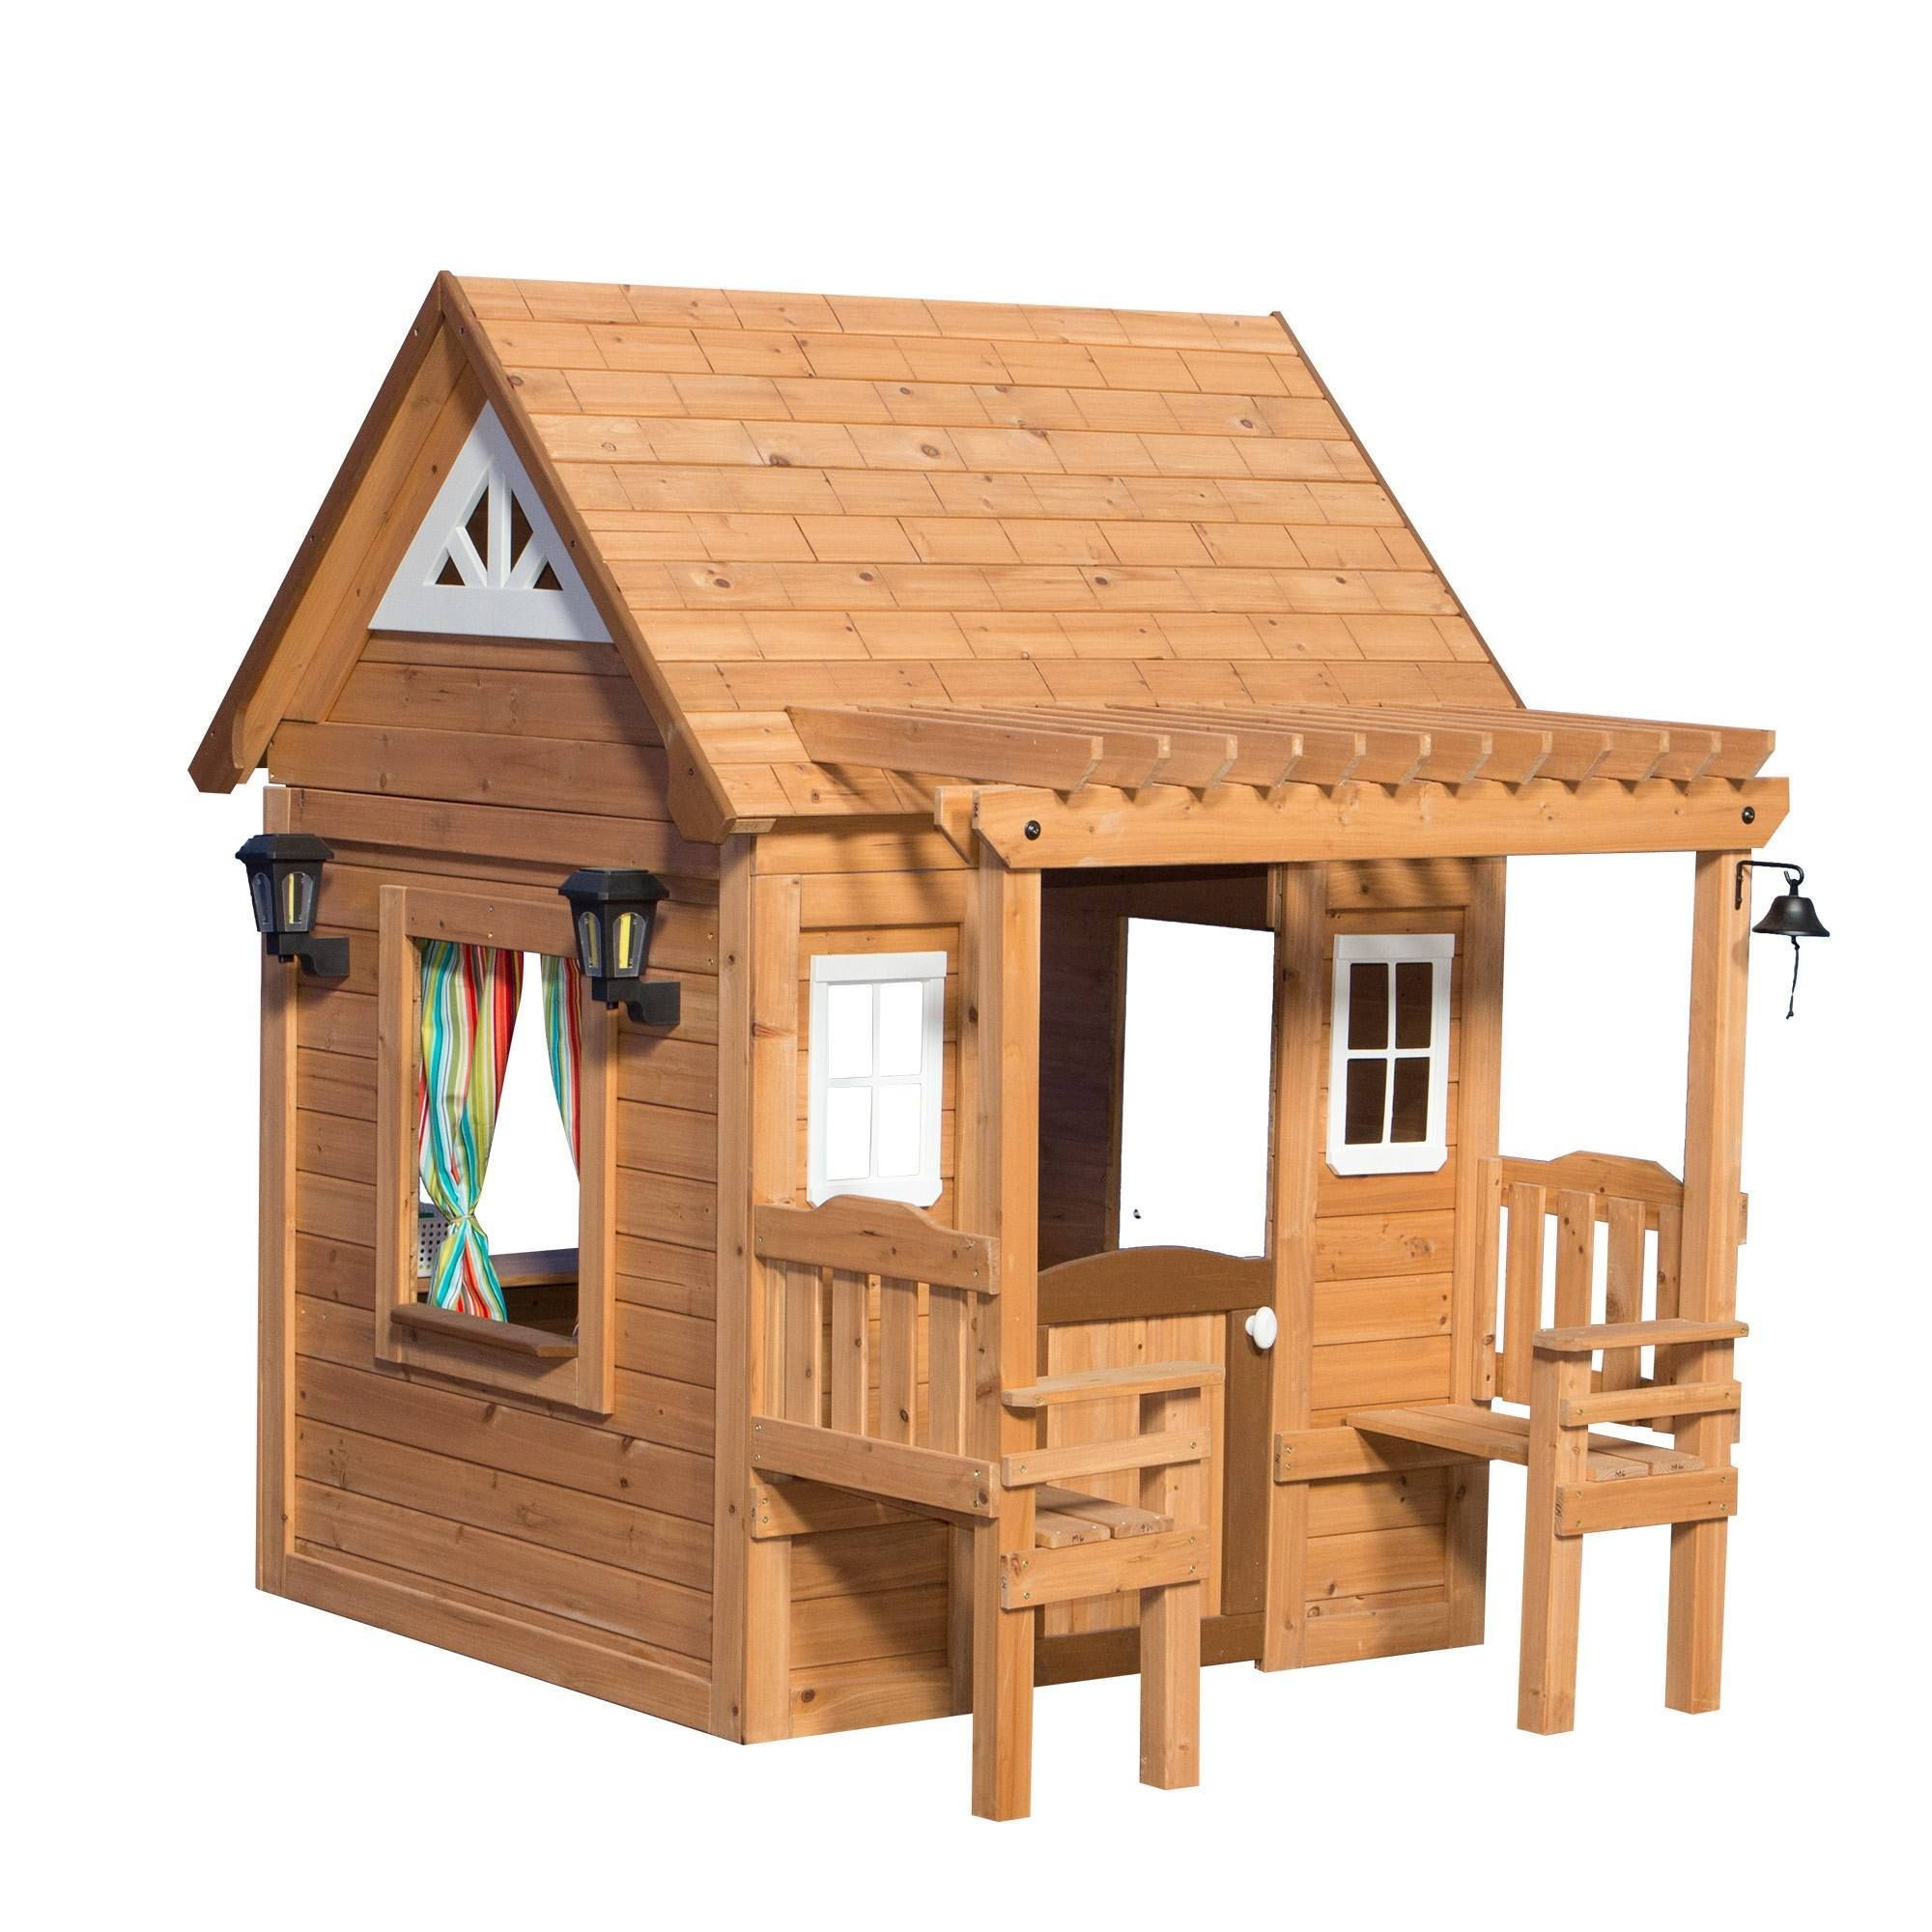 Cascade Playhouse In 2019 Crafts Playhouse Outdoor Cedar